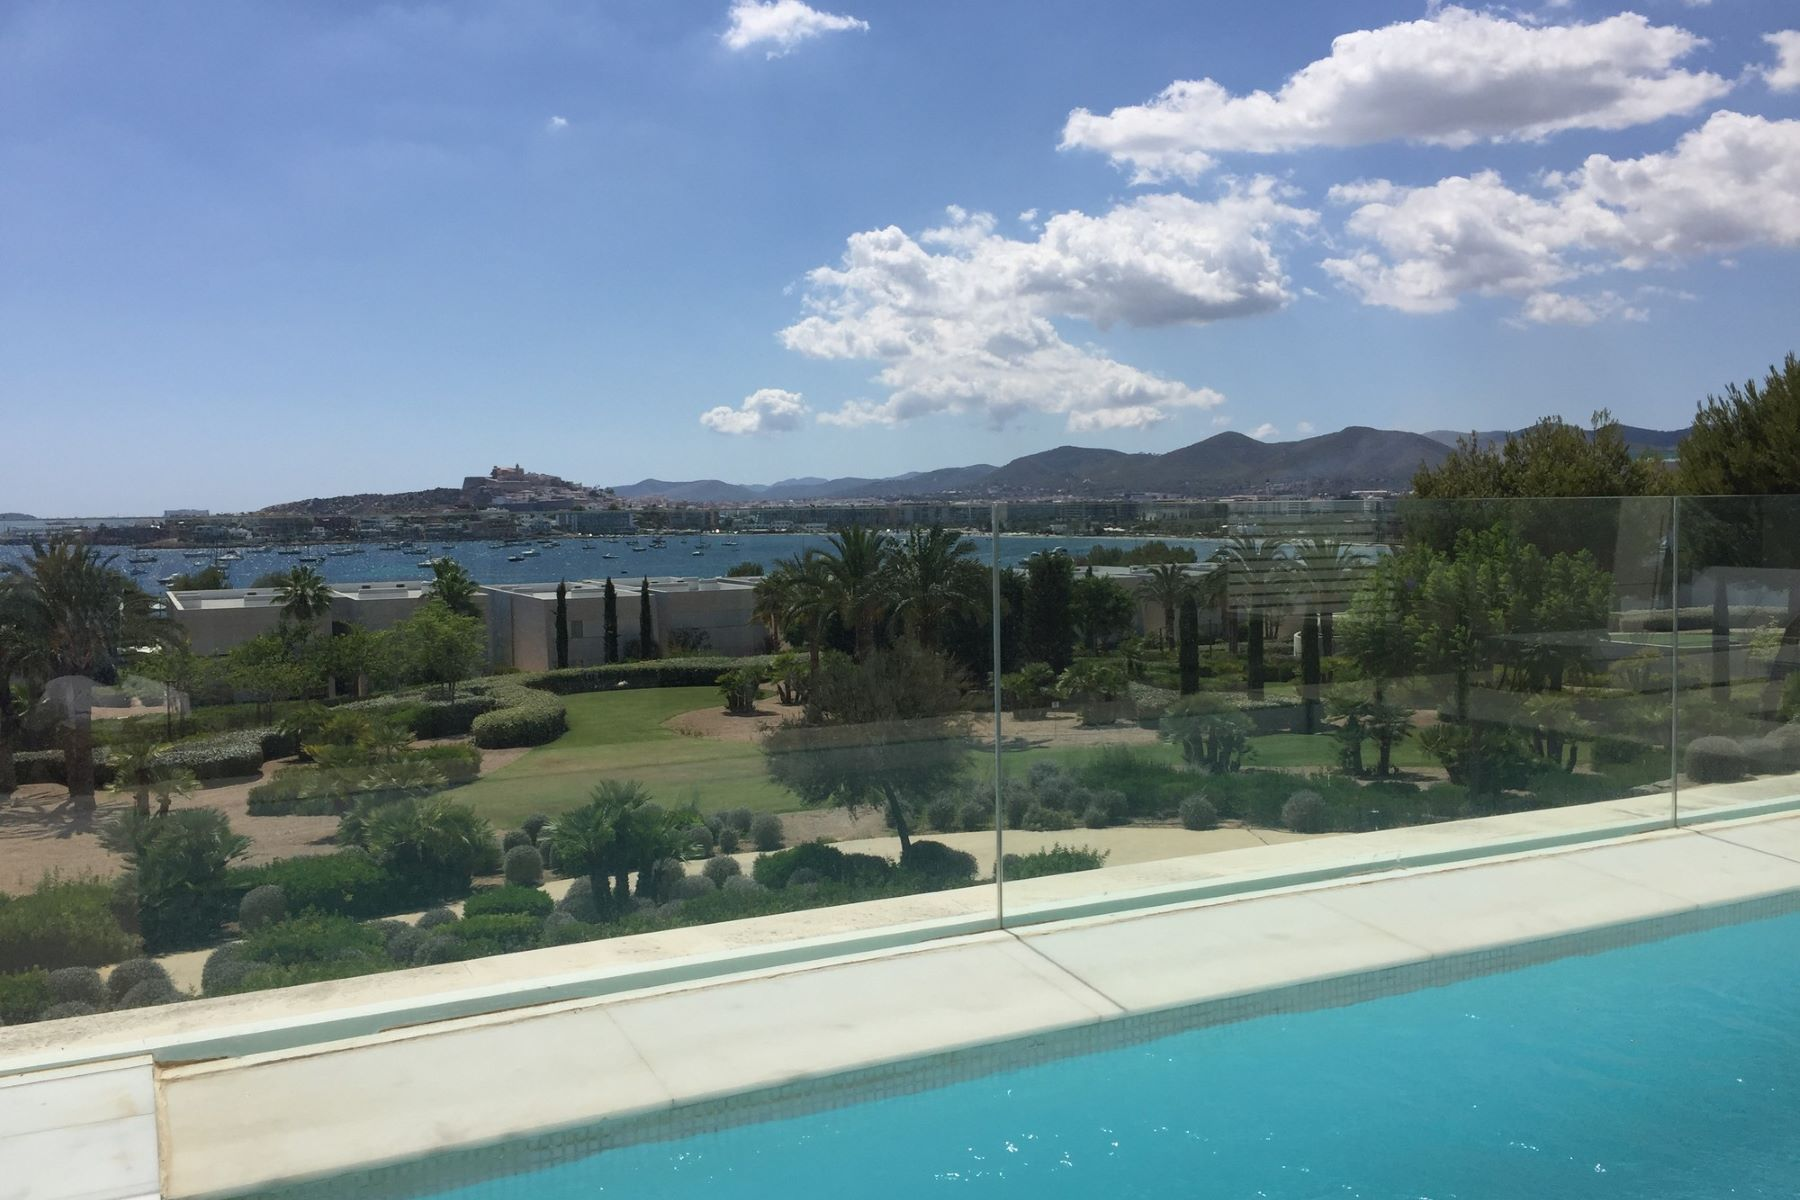 Apartment for Sale at Luxury Apartment In Es Pouet Talamanca Ibiza, Balearic Islands 07800 Spain